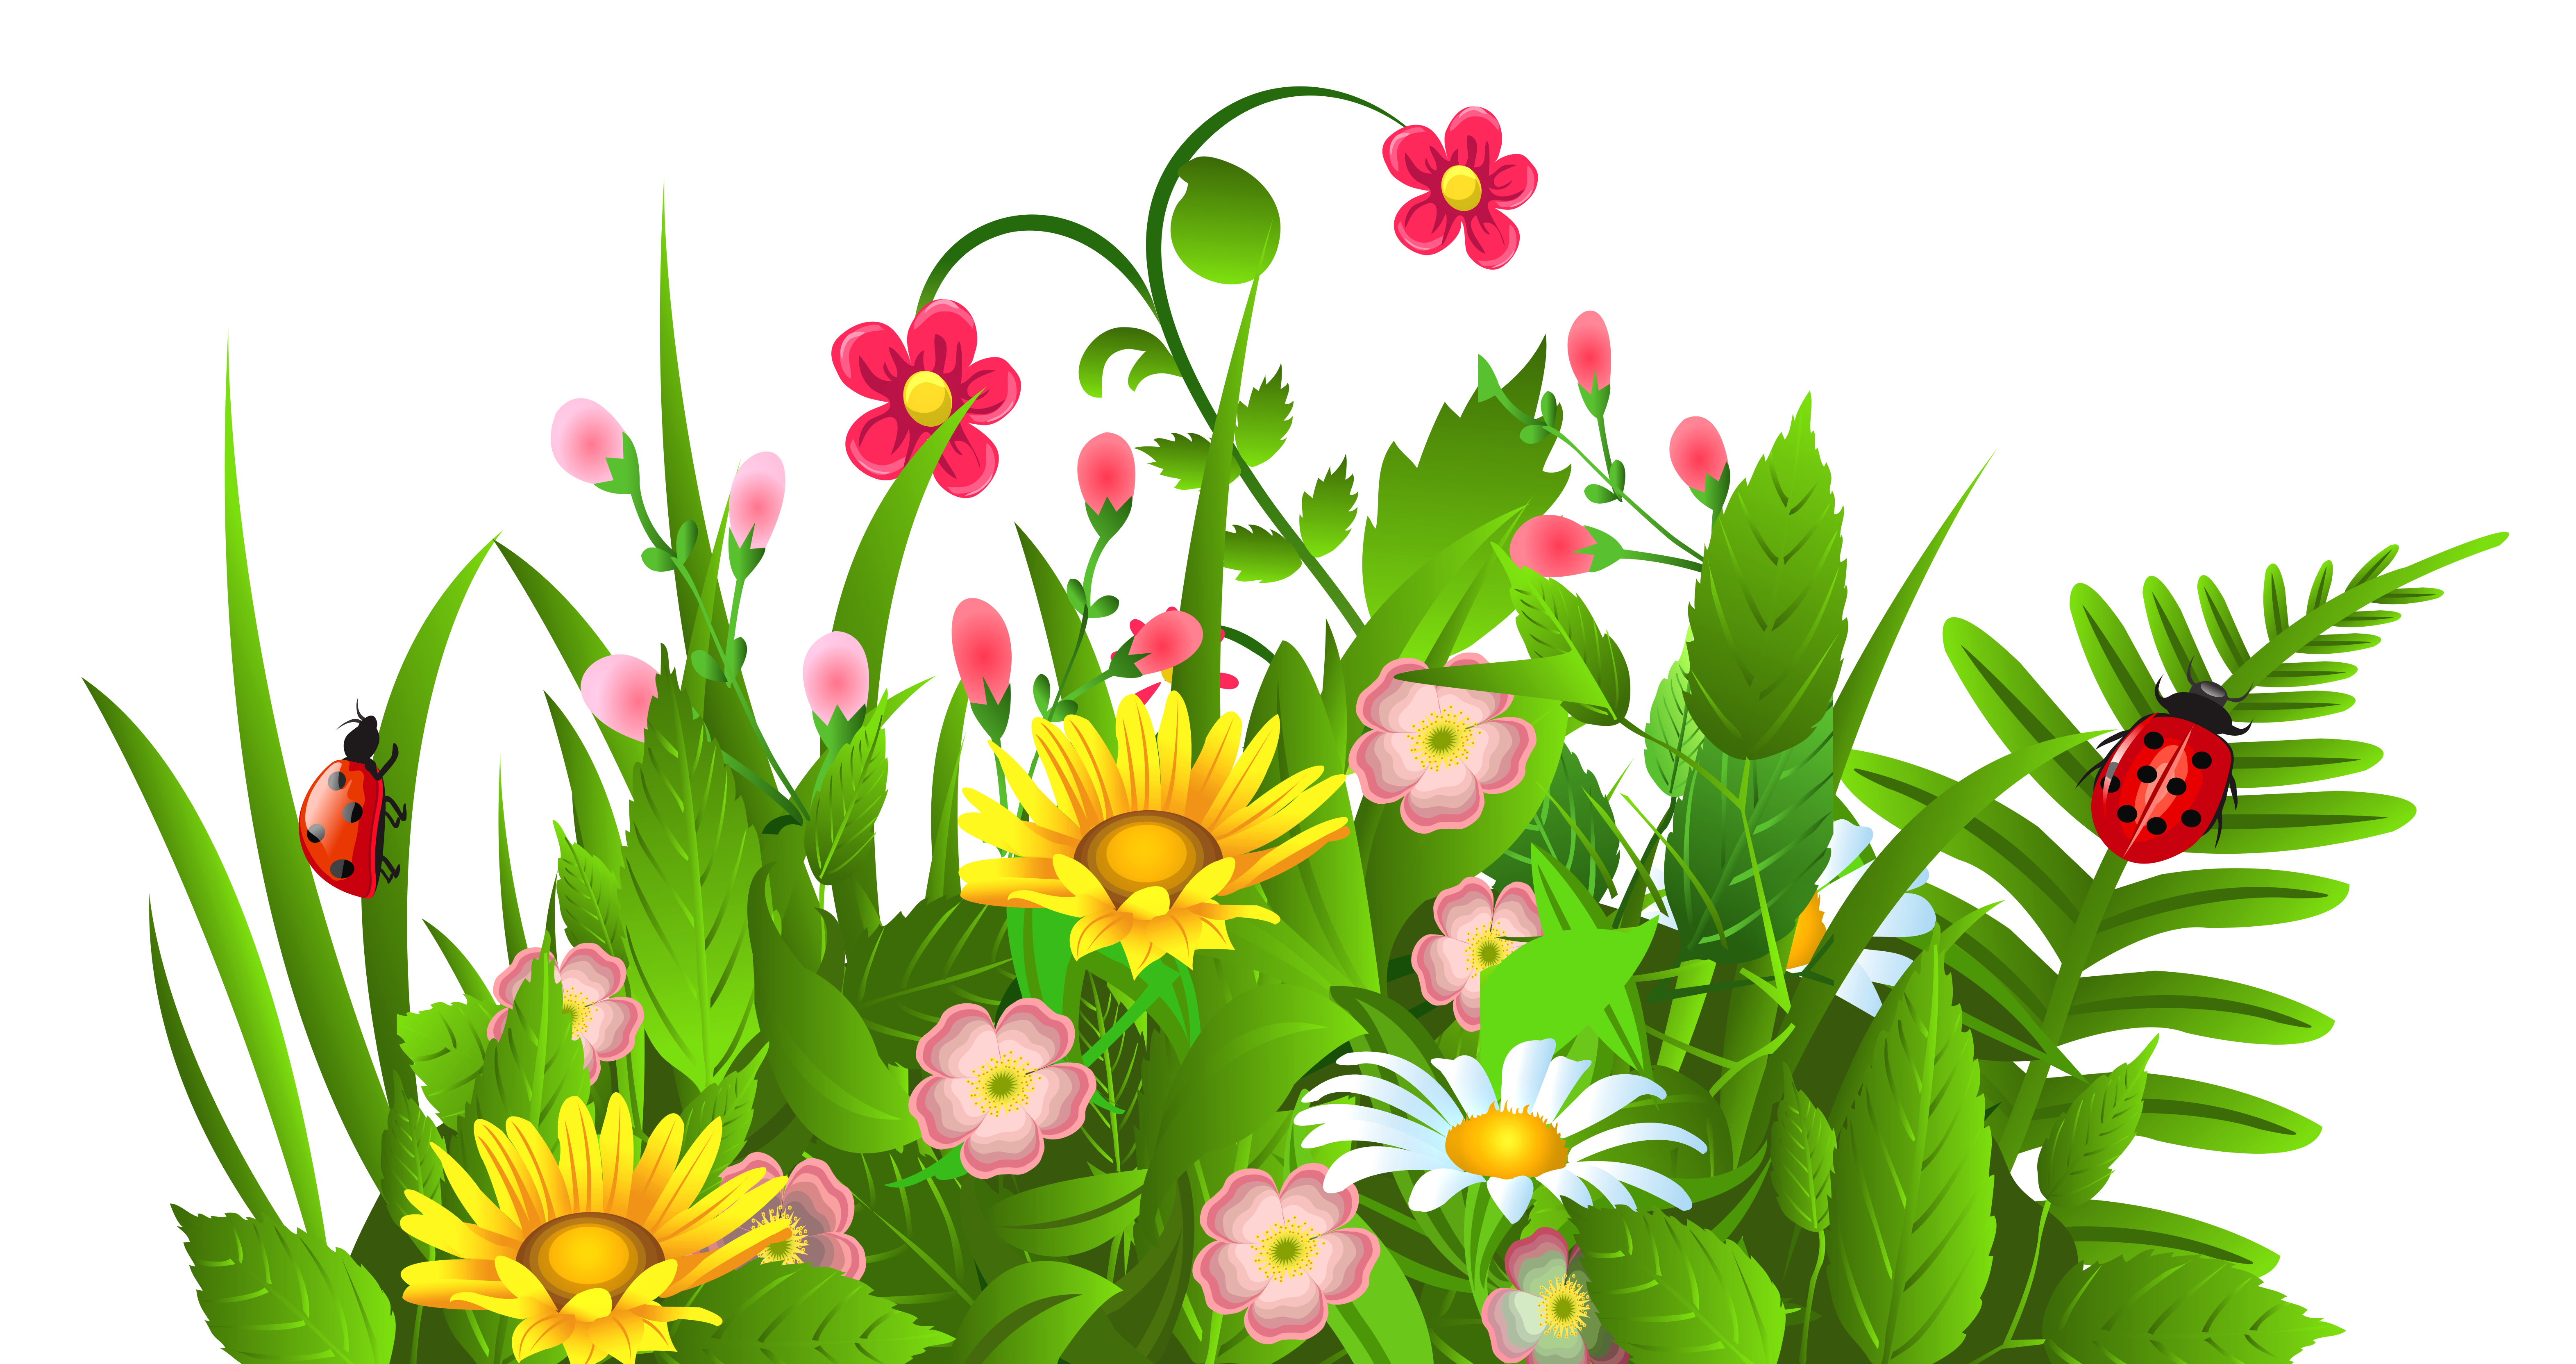 Cute Grass and Flowers PNG Clipart Flower images, Flower